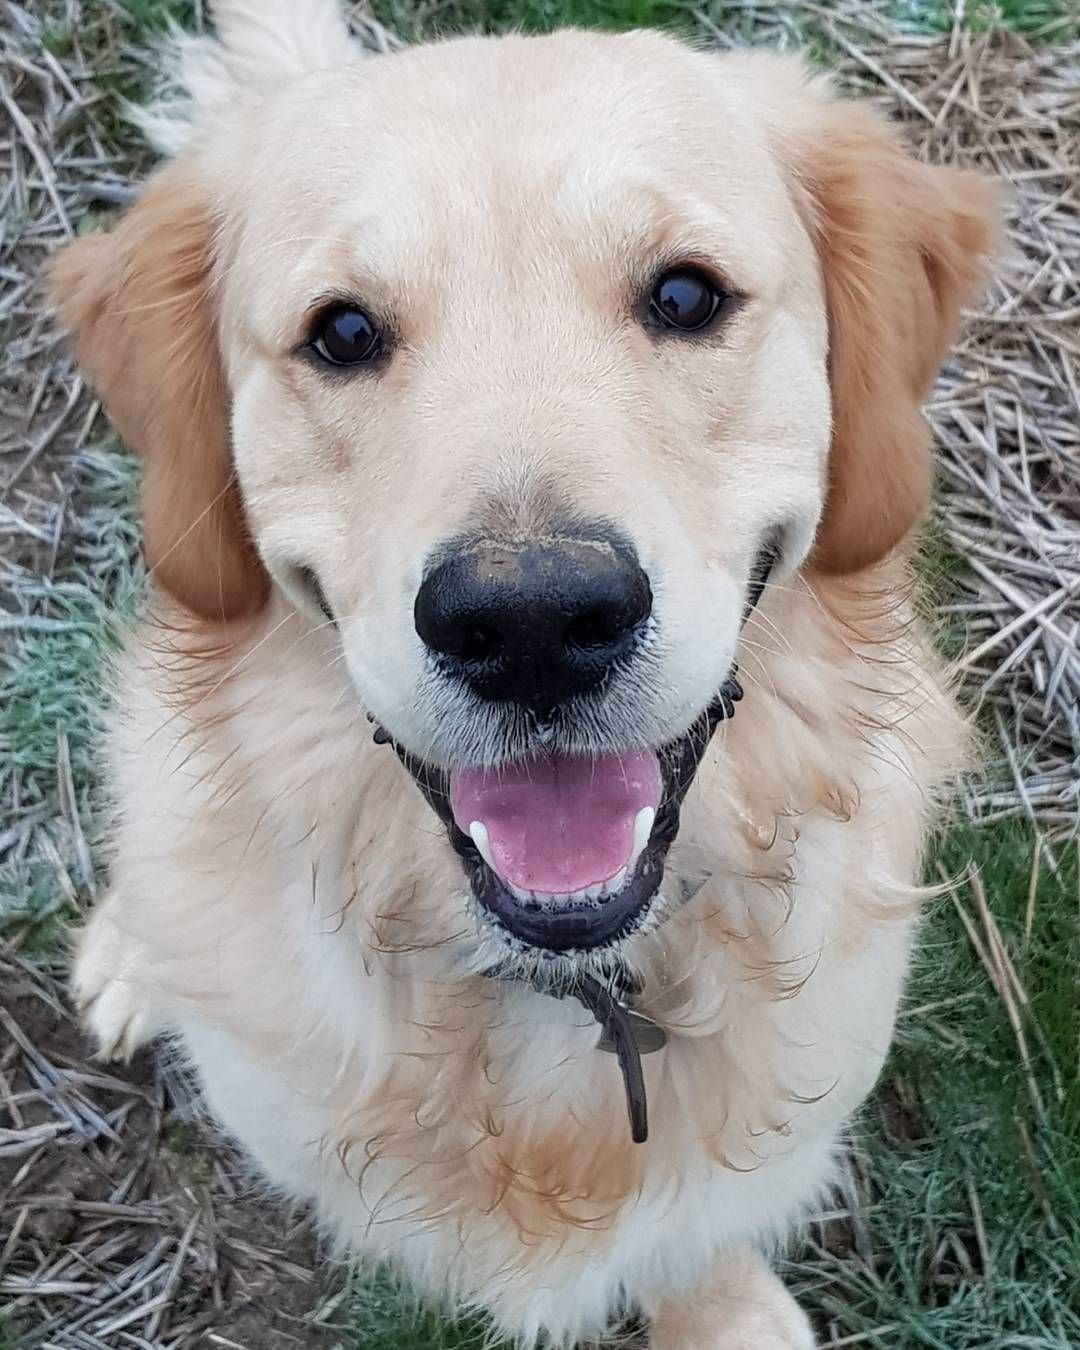 Wellington Beautiful Dogs Golden Retriever Puppy Golden Retriever